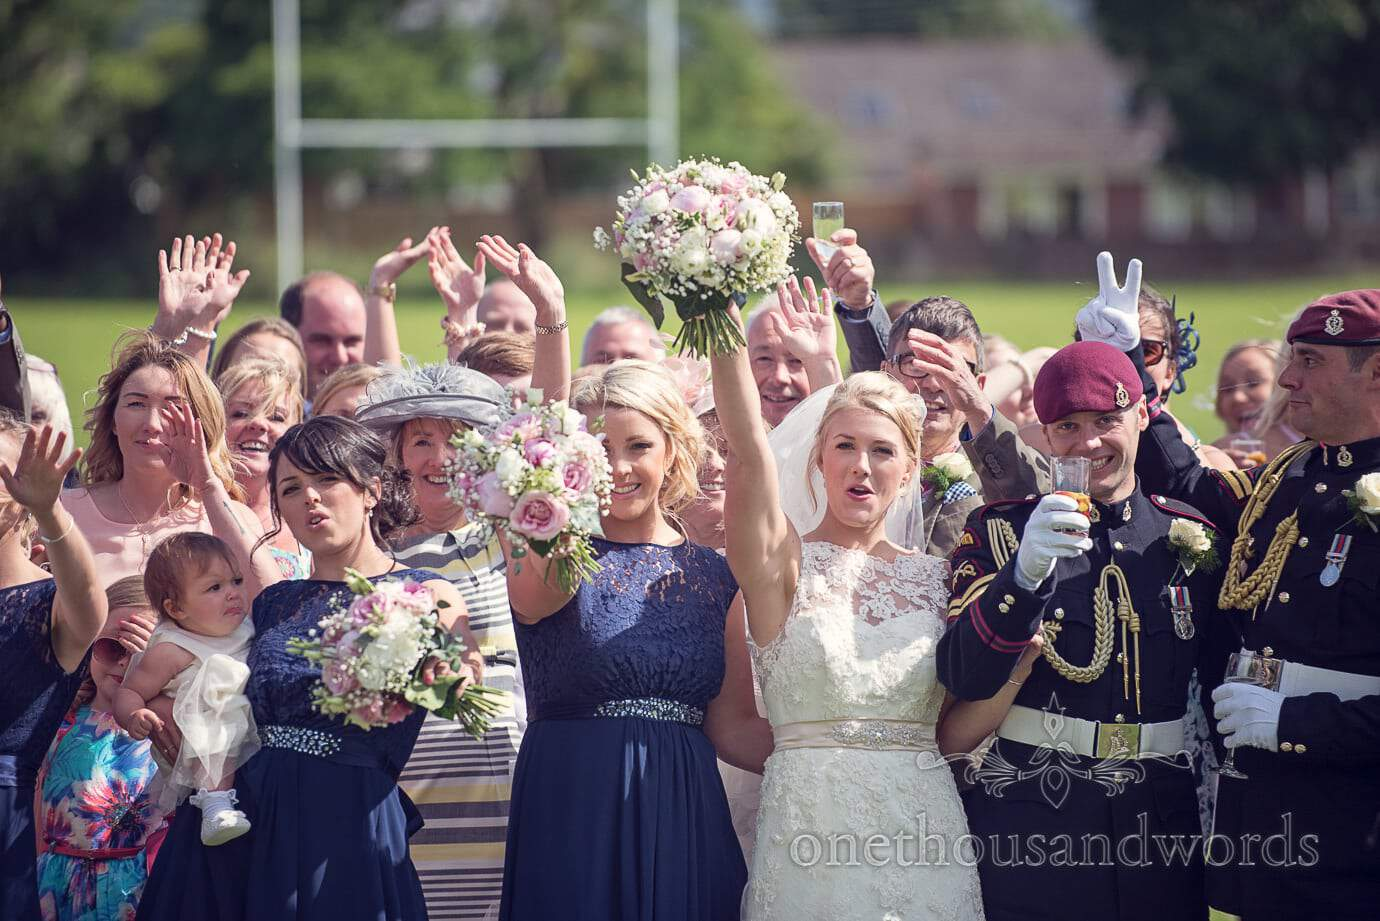 Wedding party cheer and wave during wedding group photographs